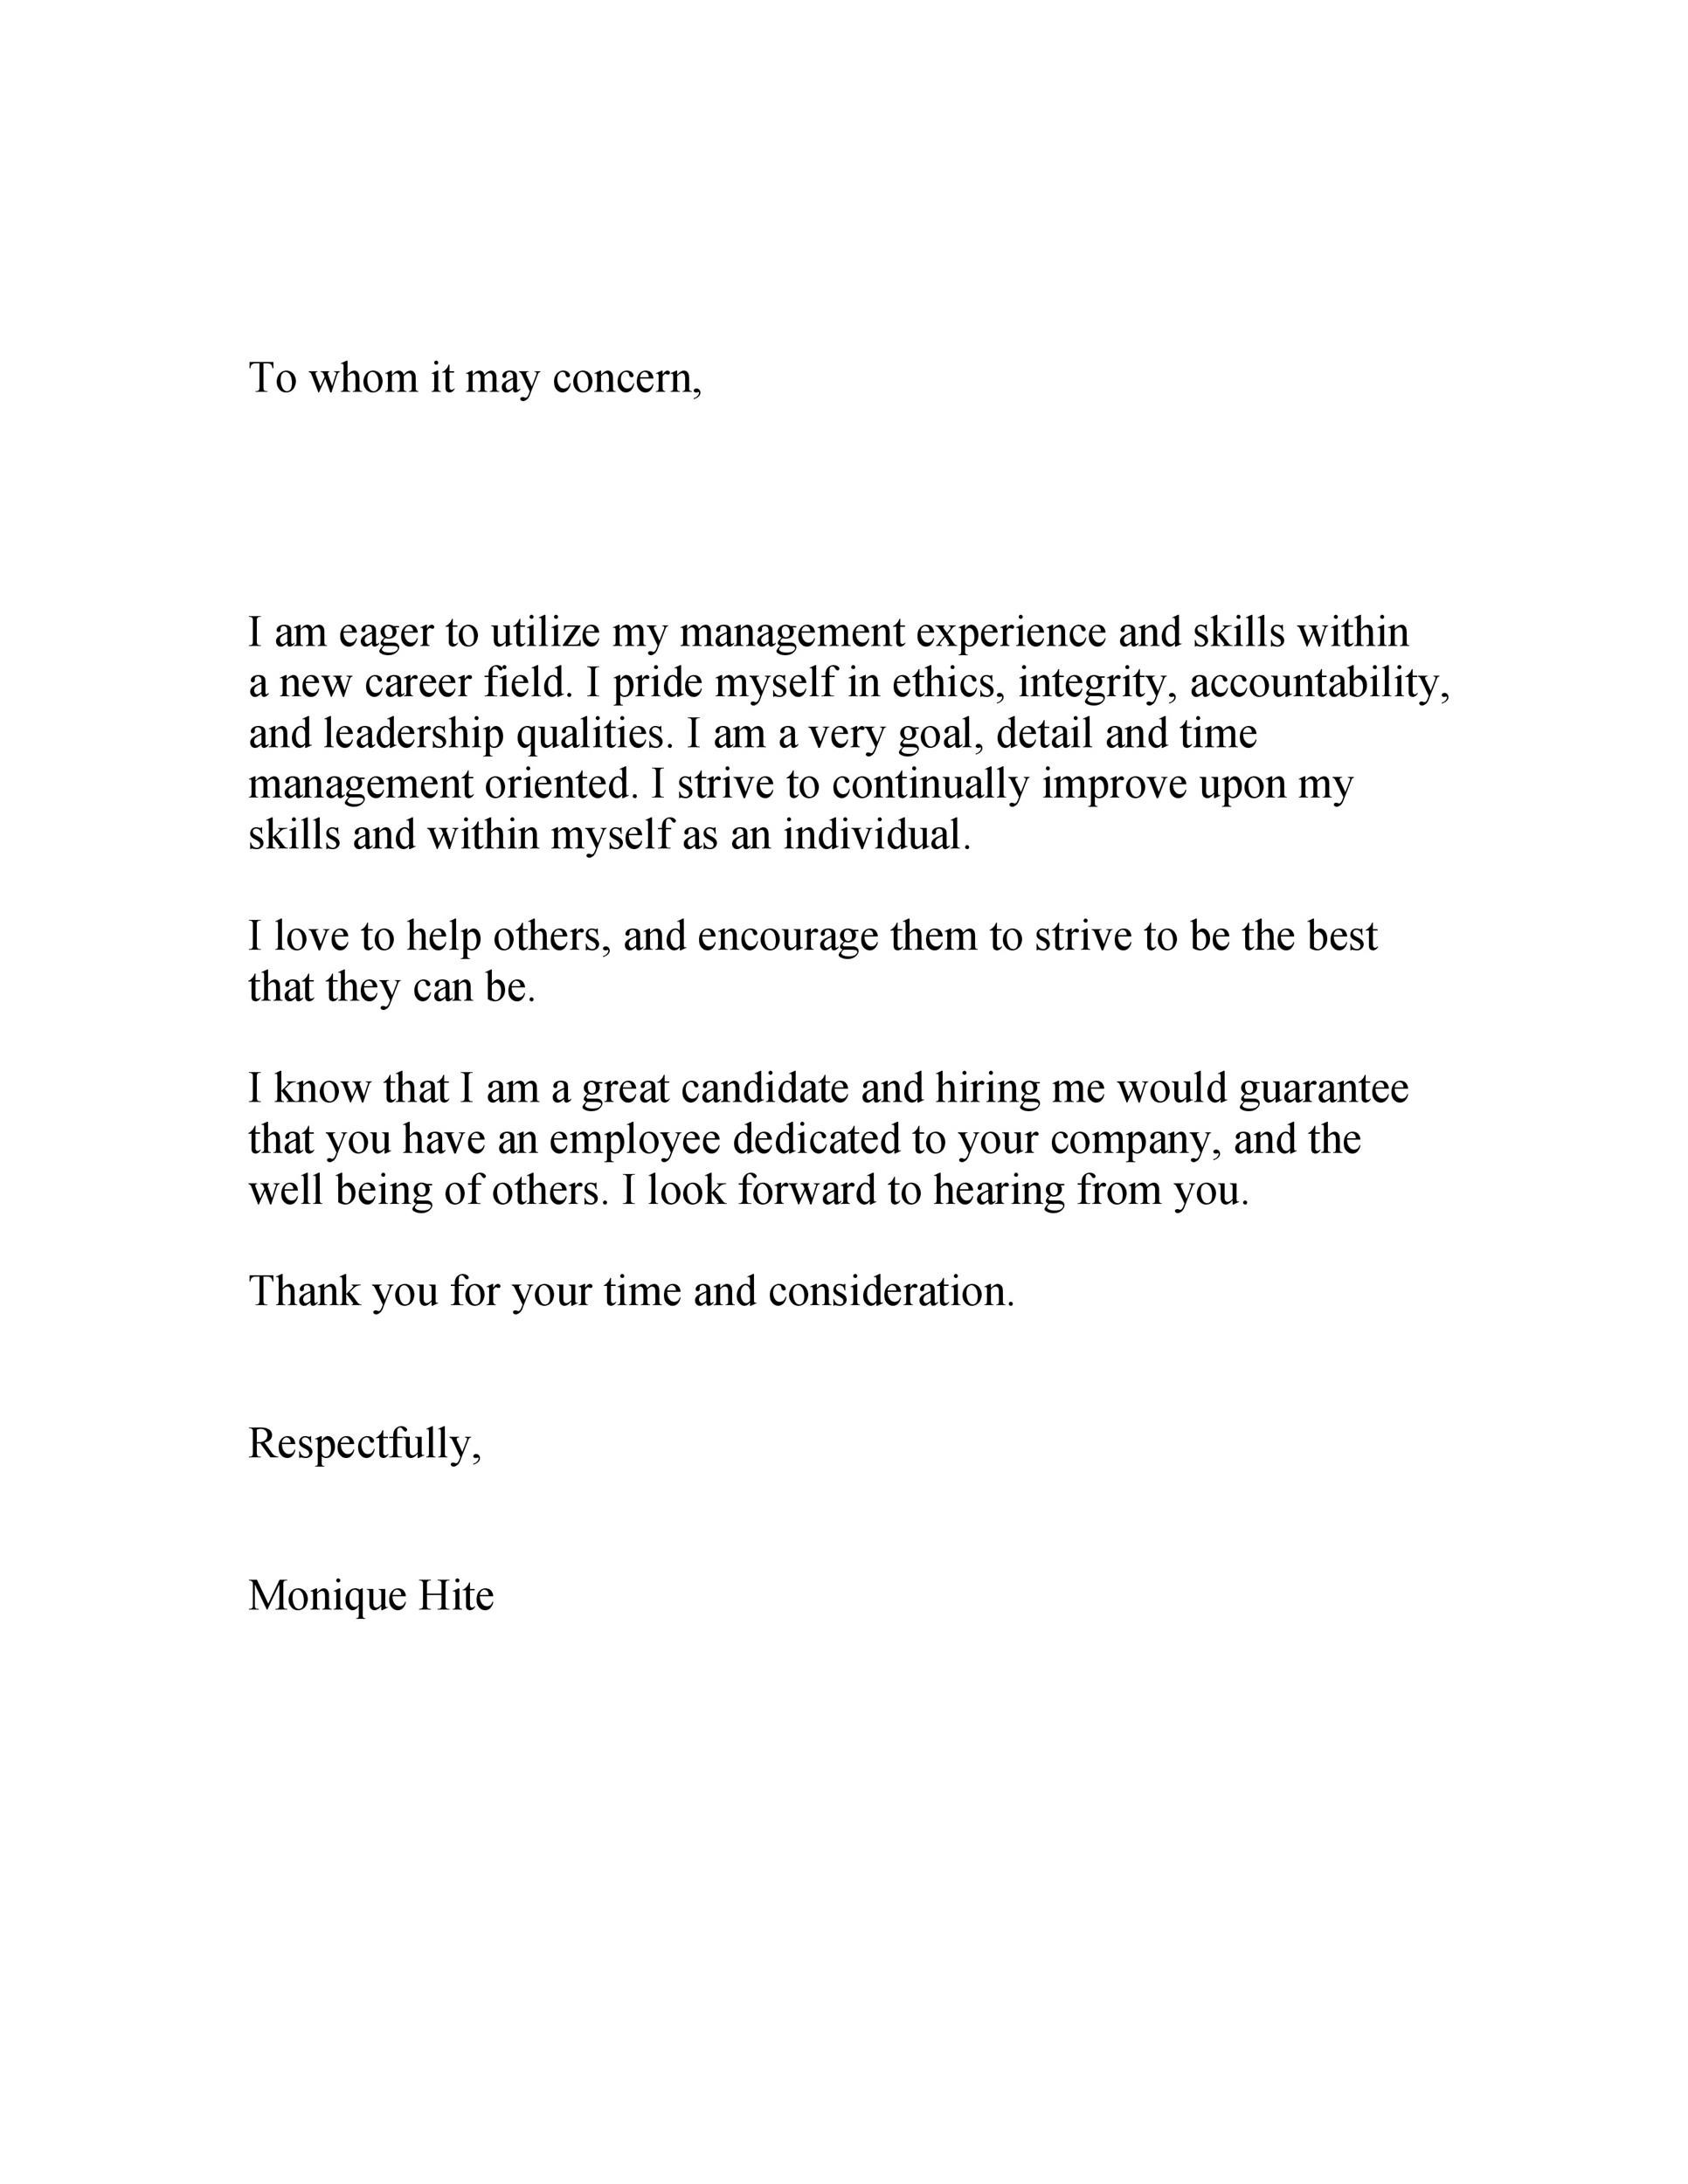 May Whom Official Heading Business Concern It Letter